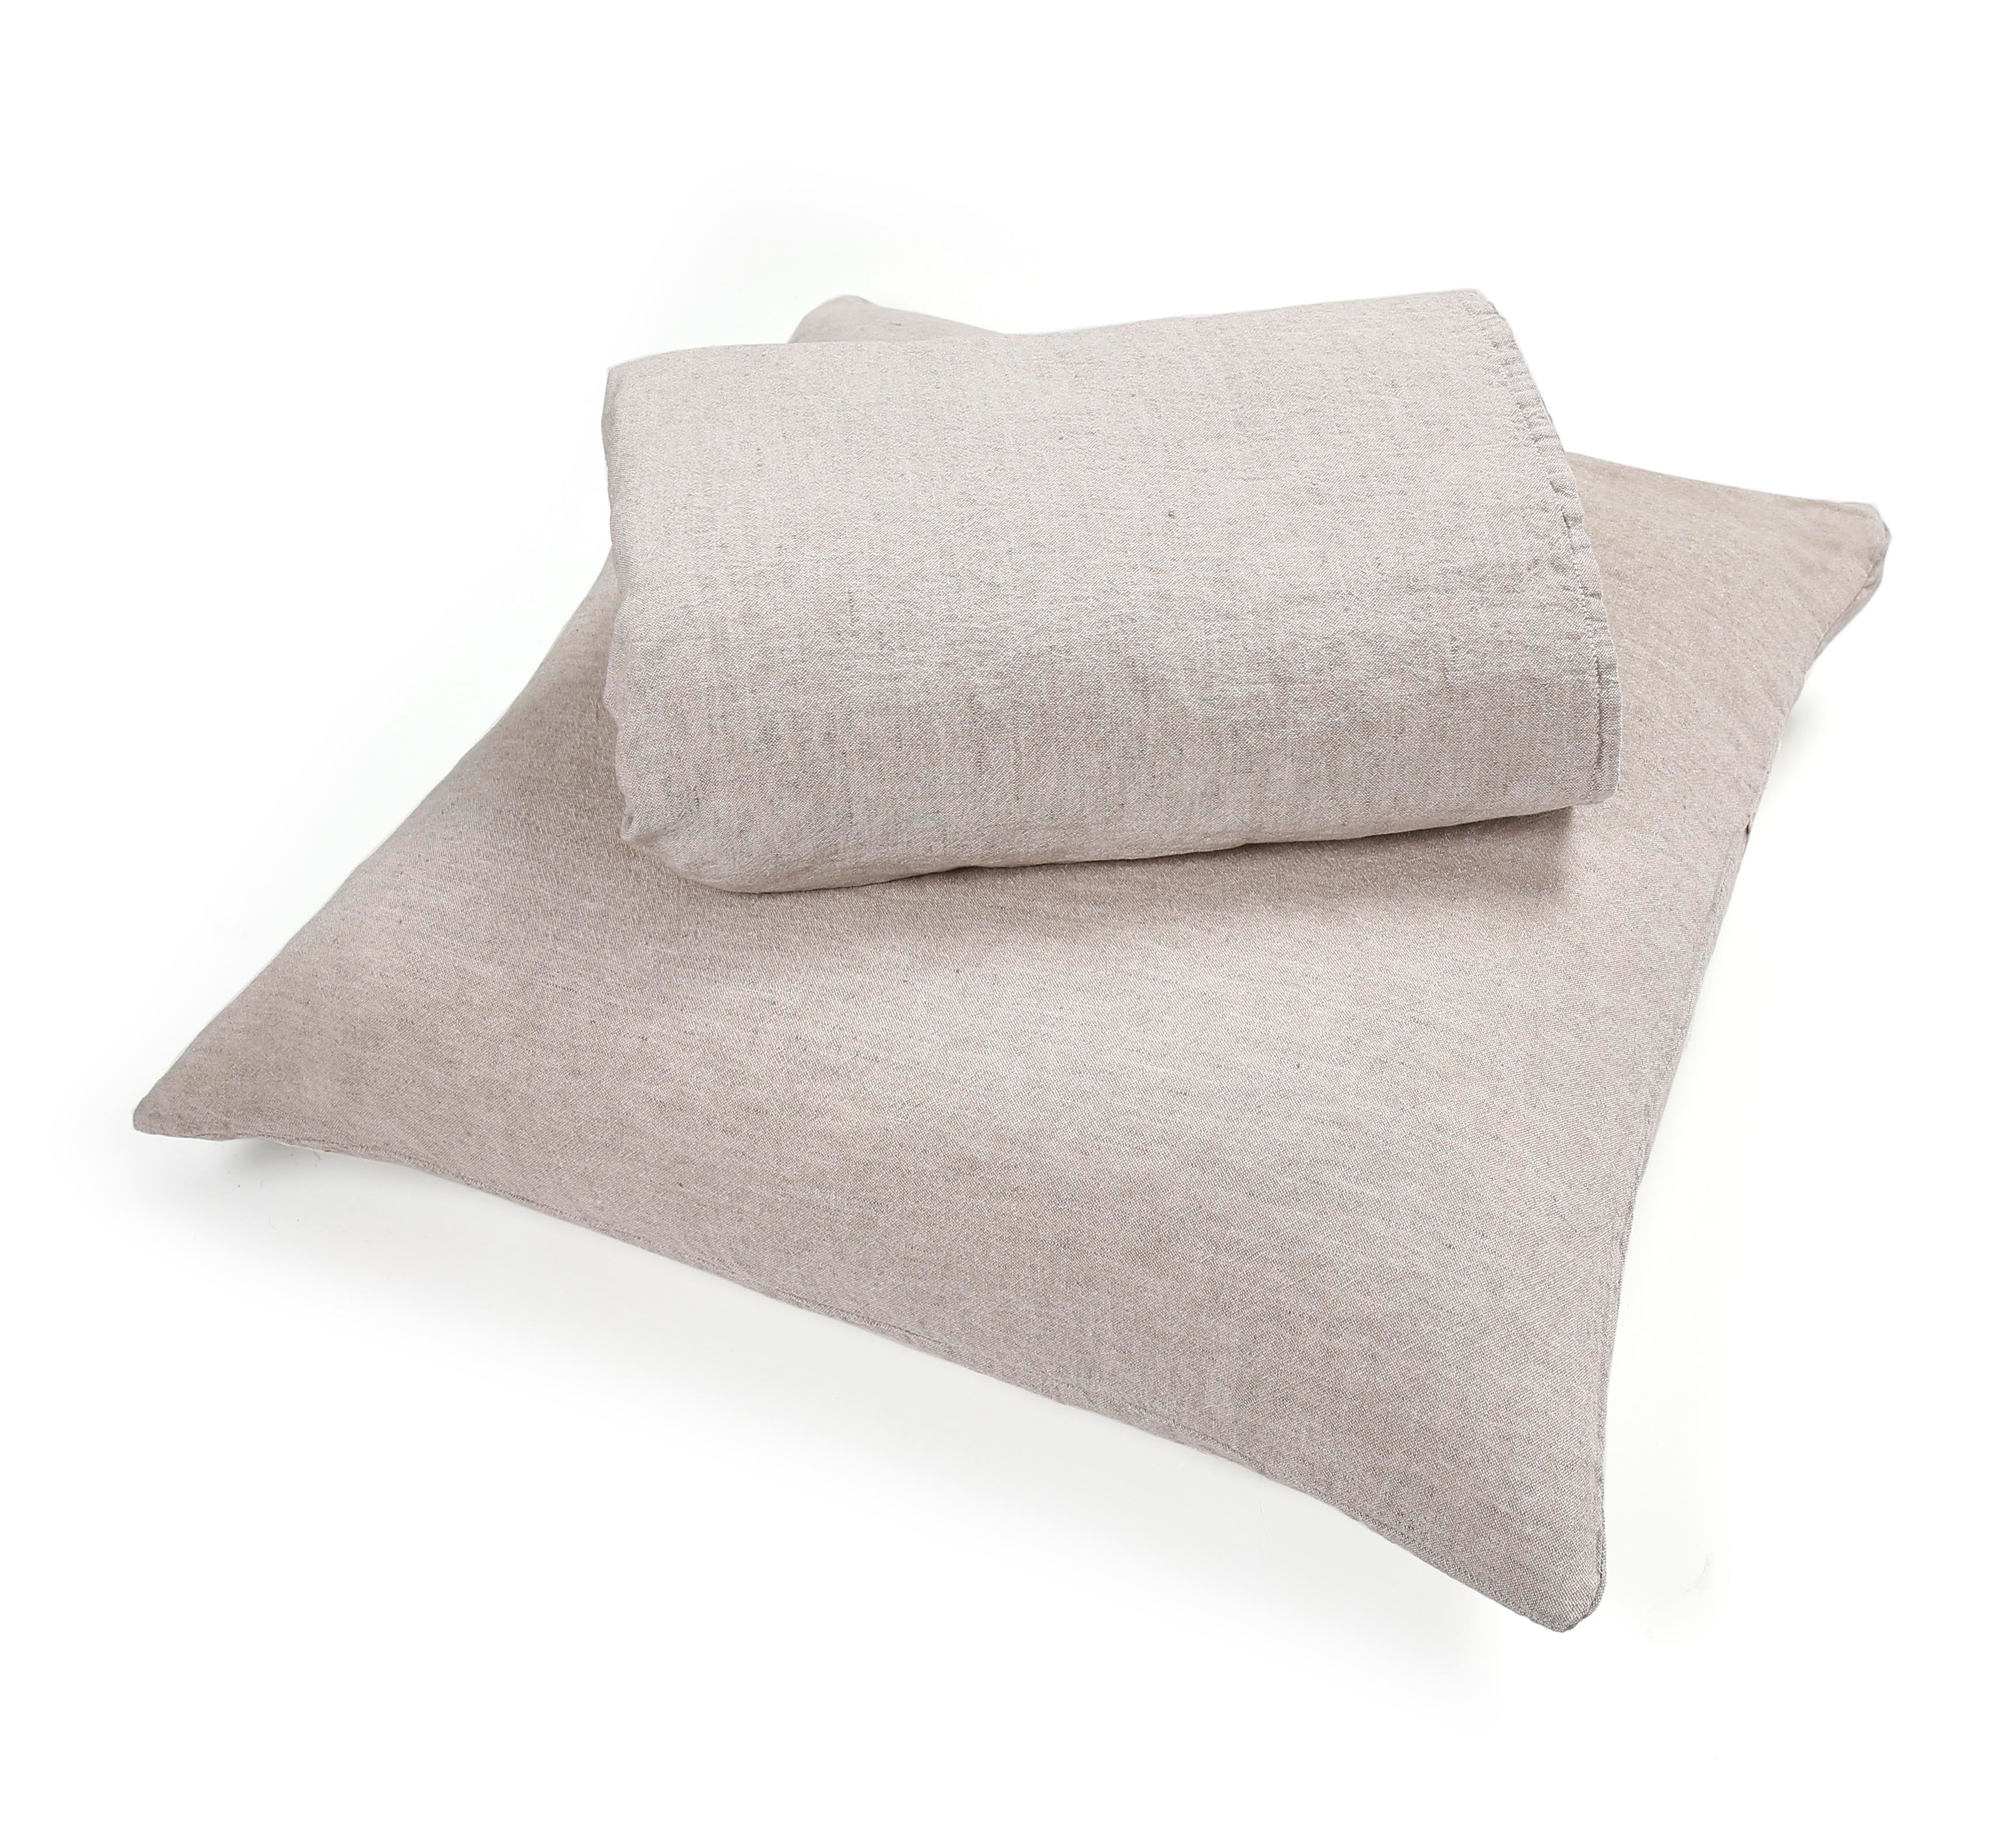 SET DUVET COVER & 2 PILLOWCASES 'BALE' - Bed Linen - SCAPA HOME - SCAPA HOME OFFICIAL